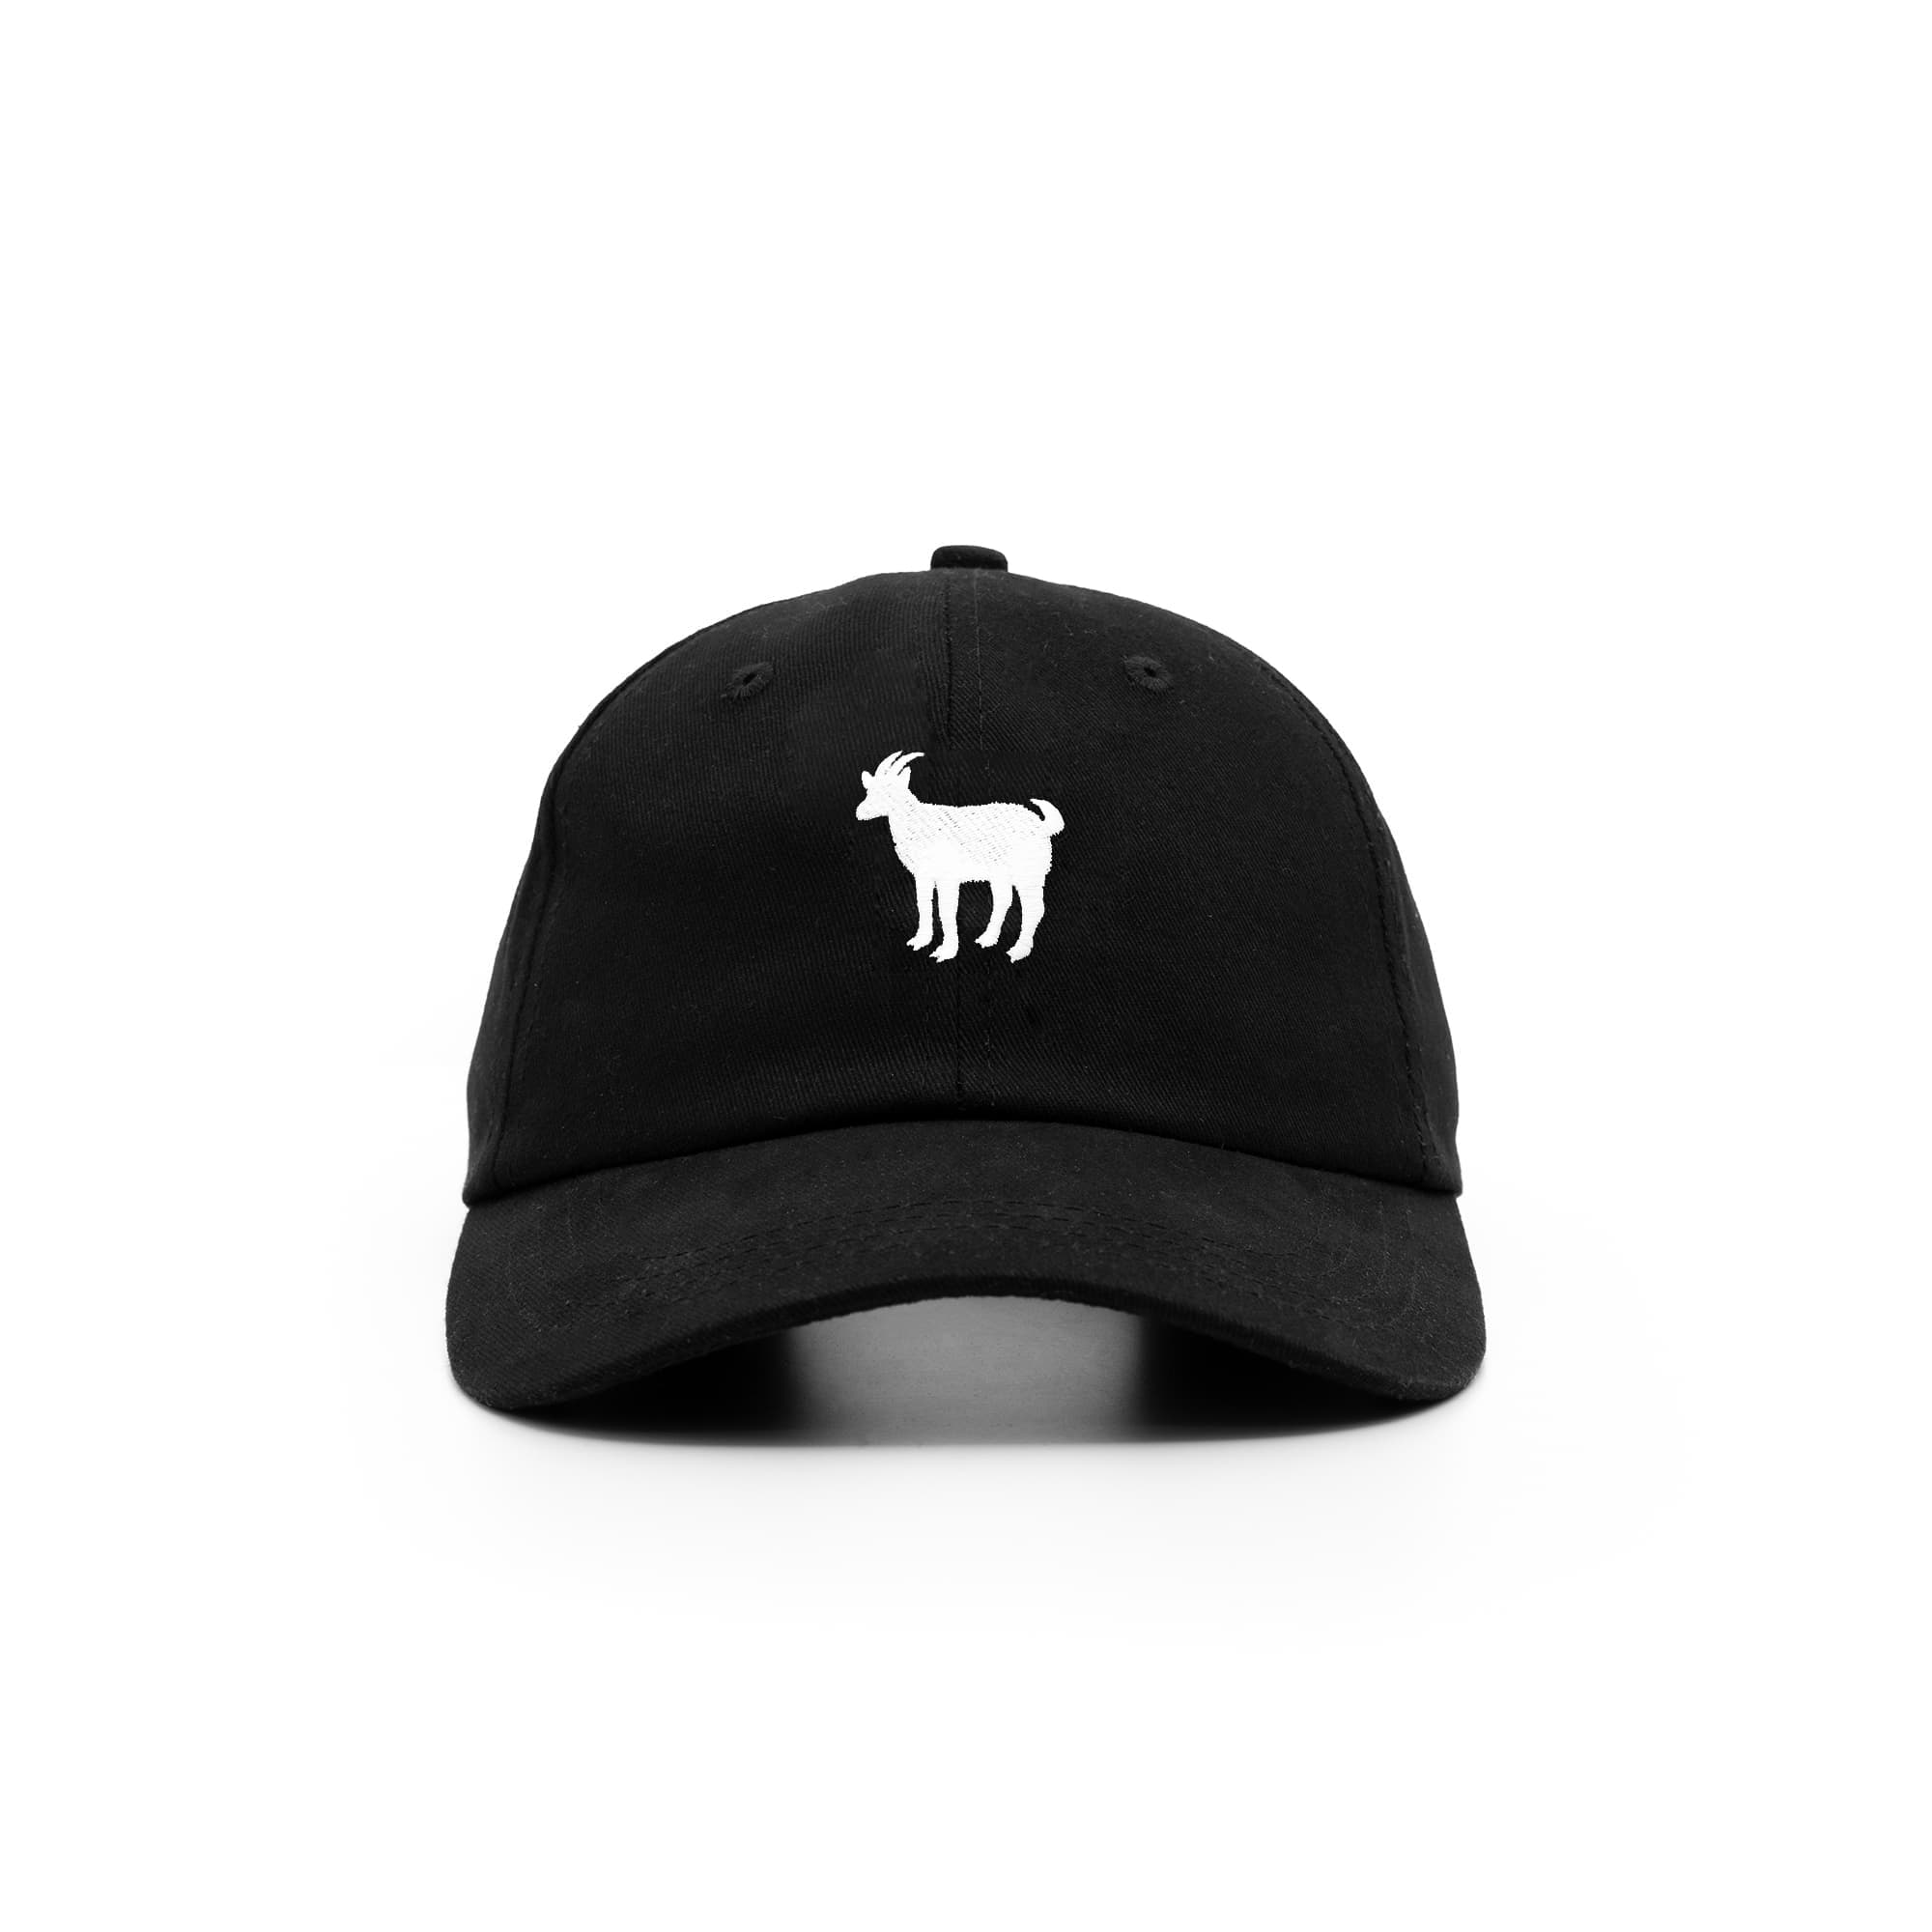 The Goat Dad Hat